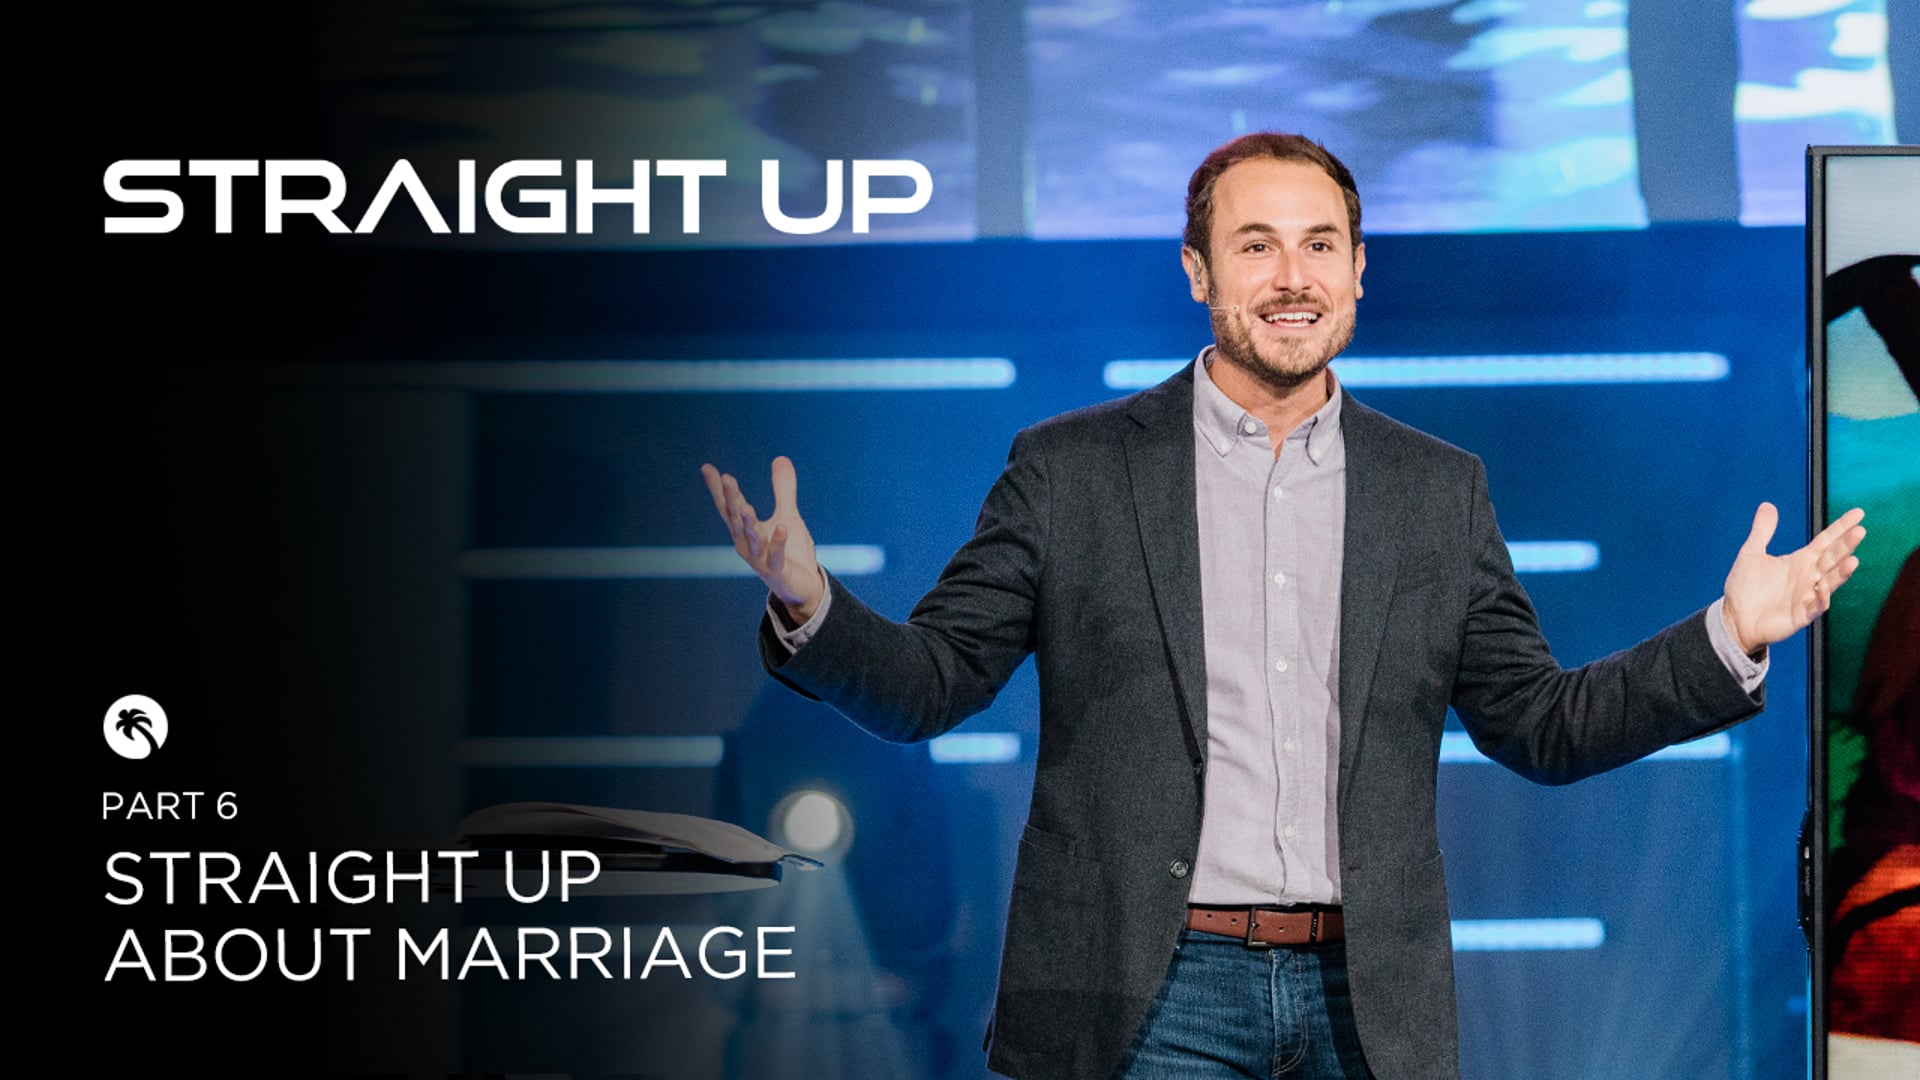 Straight Up Part 6 - Straight Up About Marriage